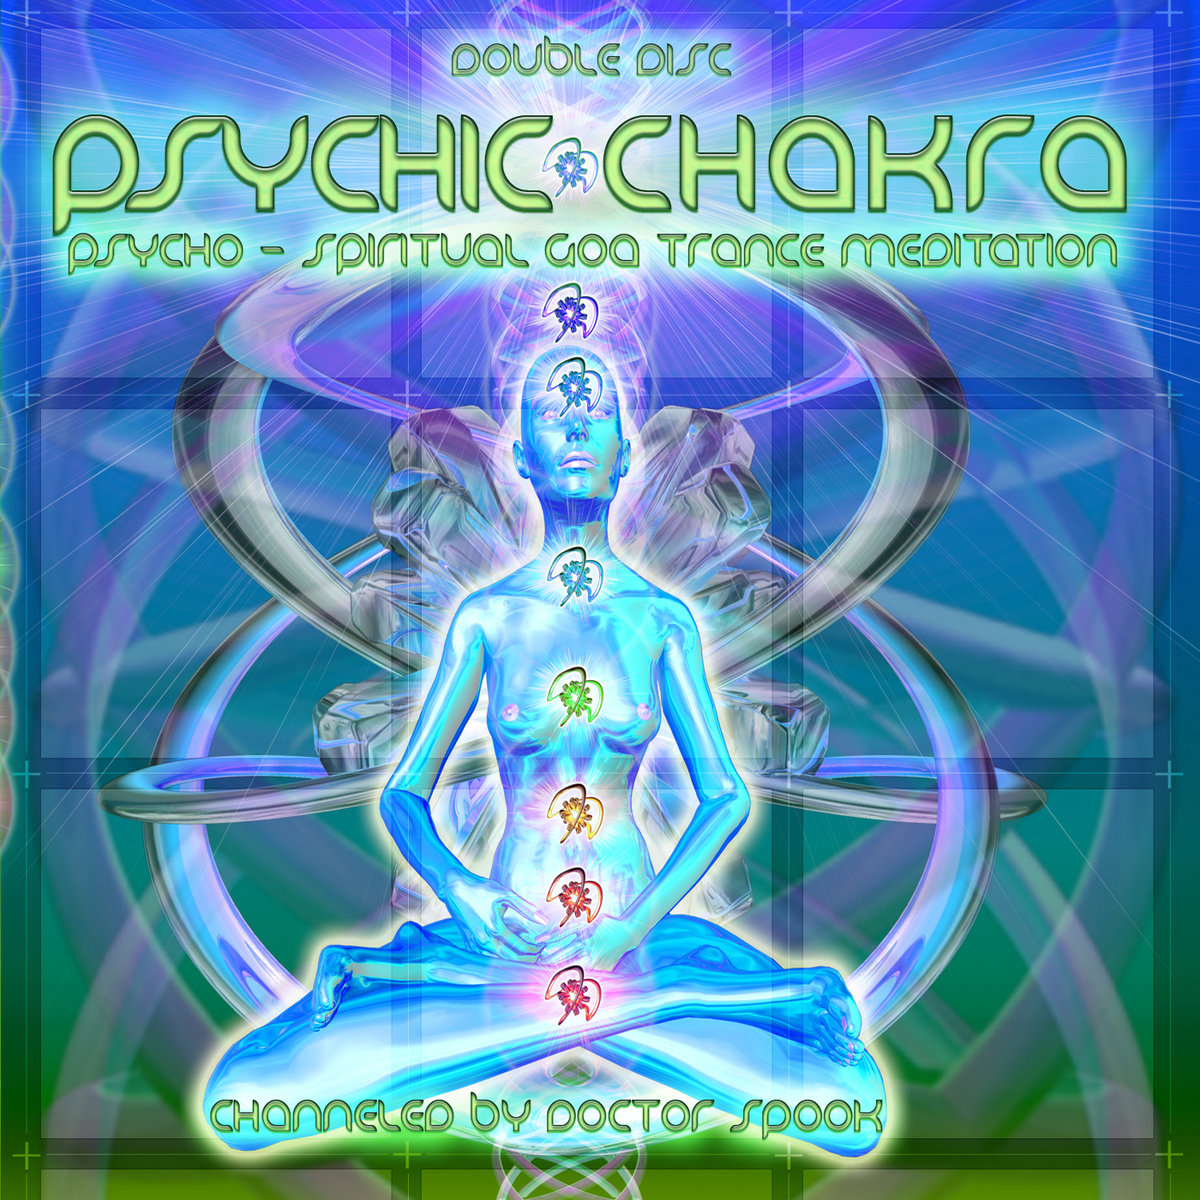 Pragmatix - Twisted Perception @ 'Various Artists - Psychic Chakra (Channeled by Dr. Spook)' album (electronic, psychic chakra)